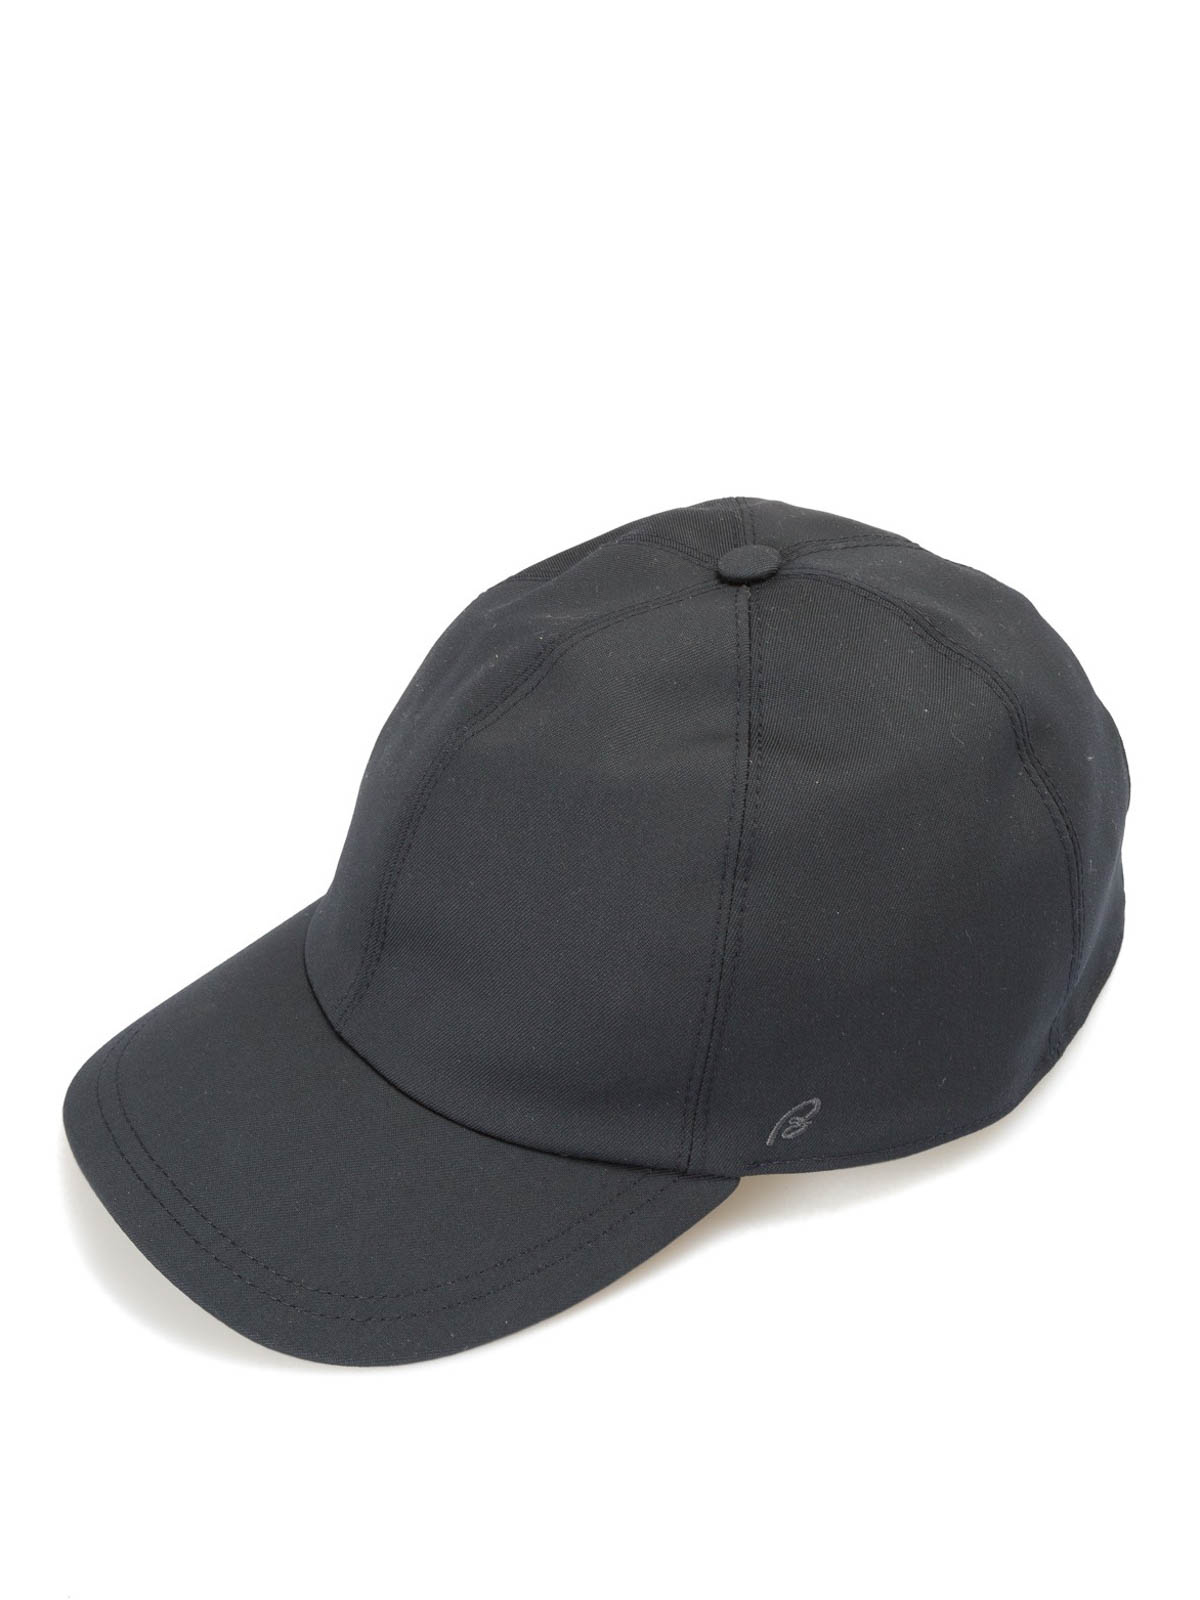 7d96ec647a3 Brioni - Suede strap detailed baseball cap - hats   caps ...